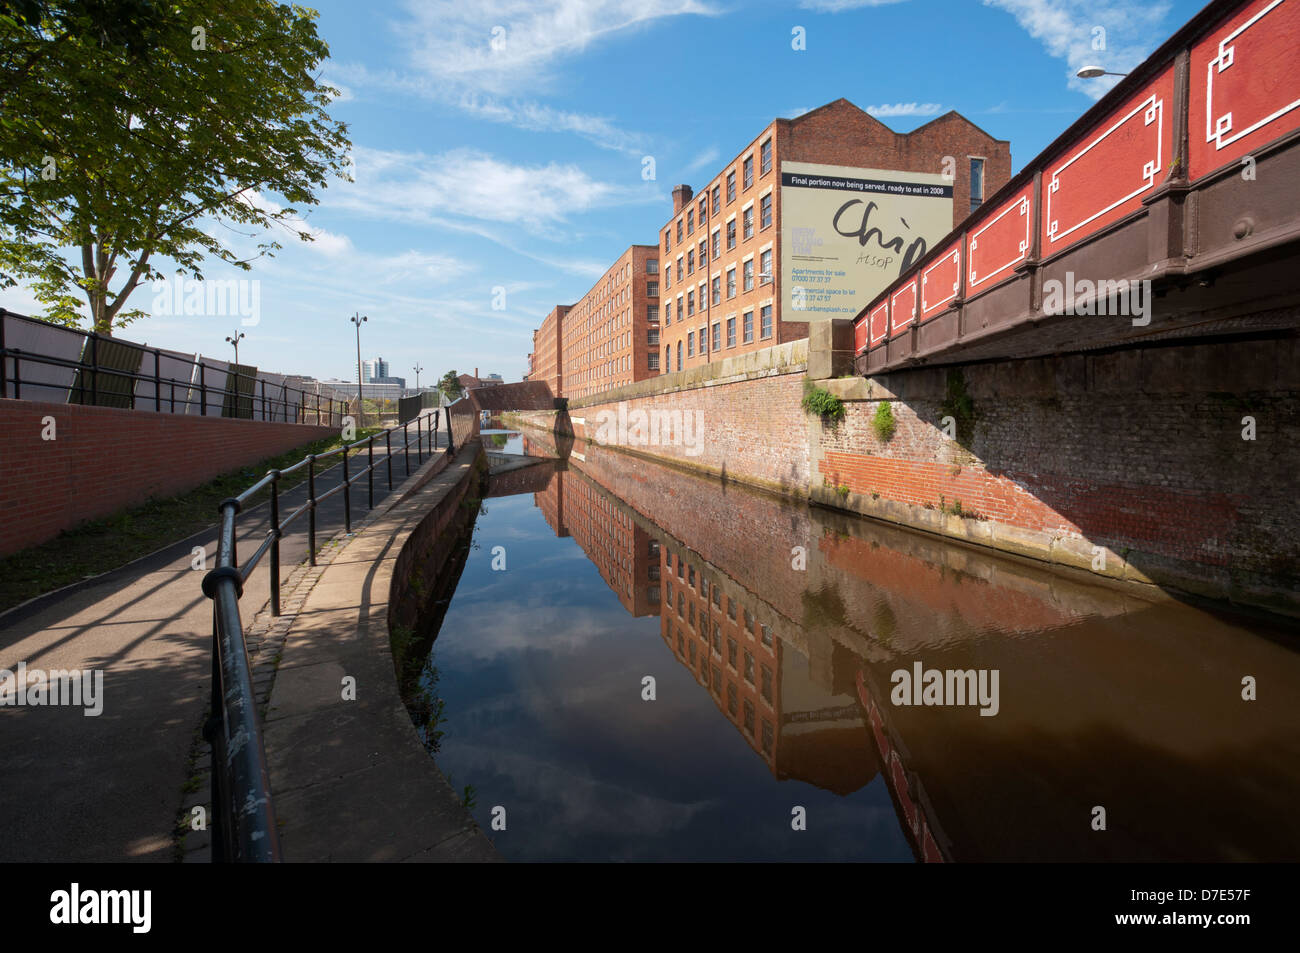 Road bridge and former cotton mills reflected in the Rochdale Canal, New Islington, Ancoats, Manchester, England, - Stock Image